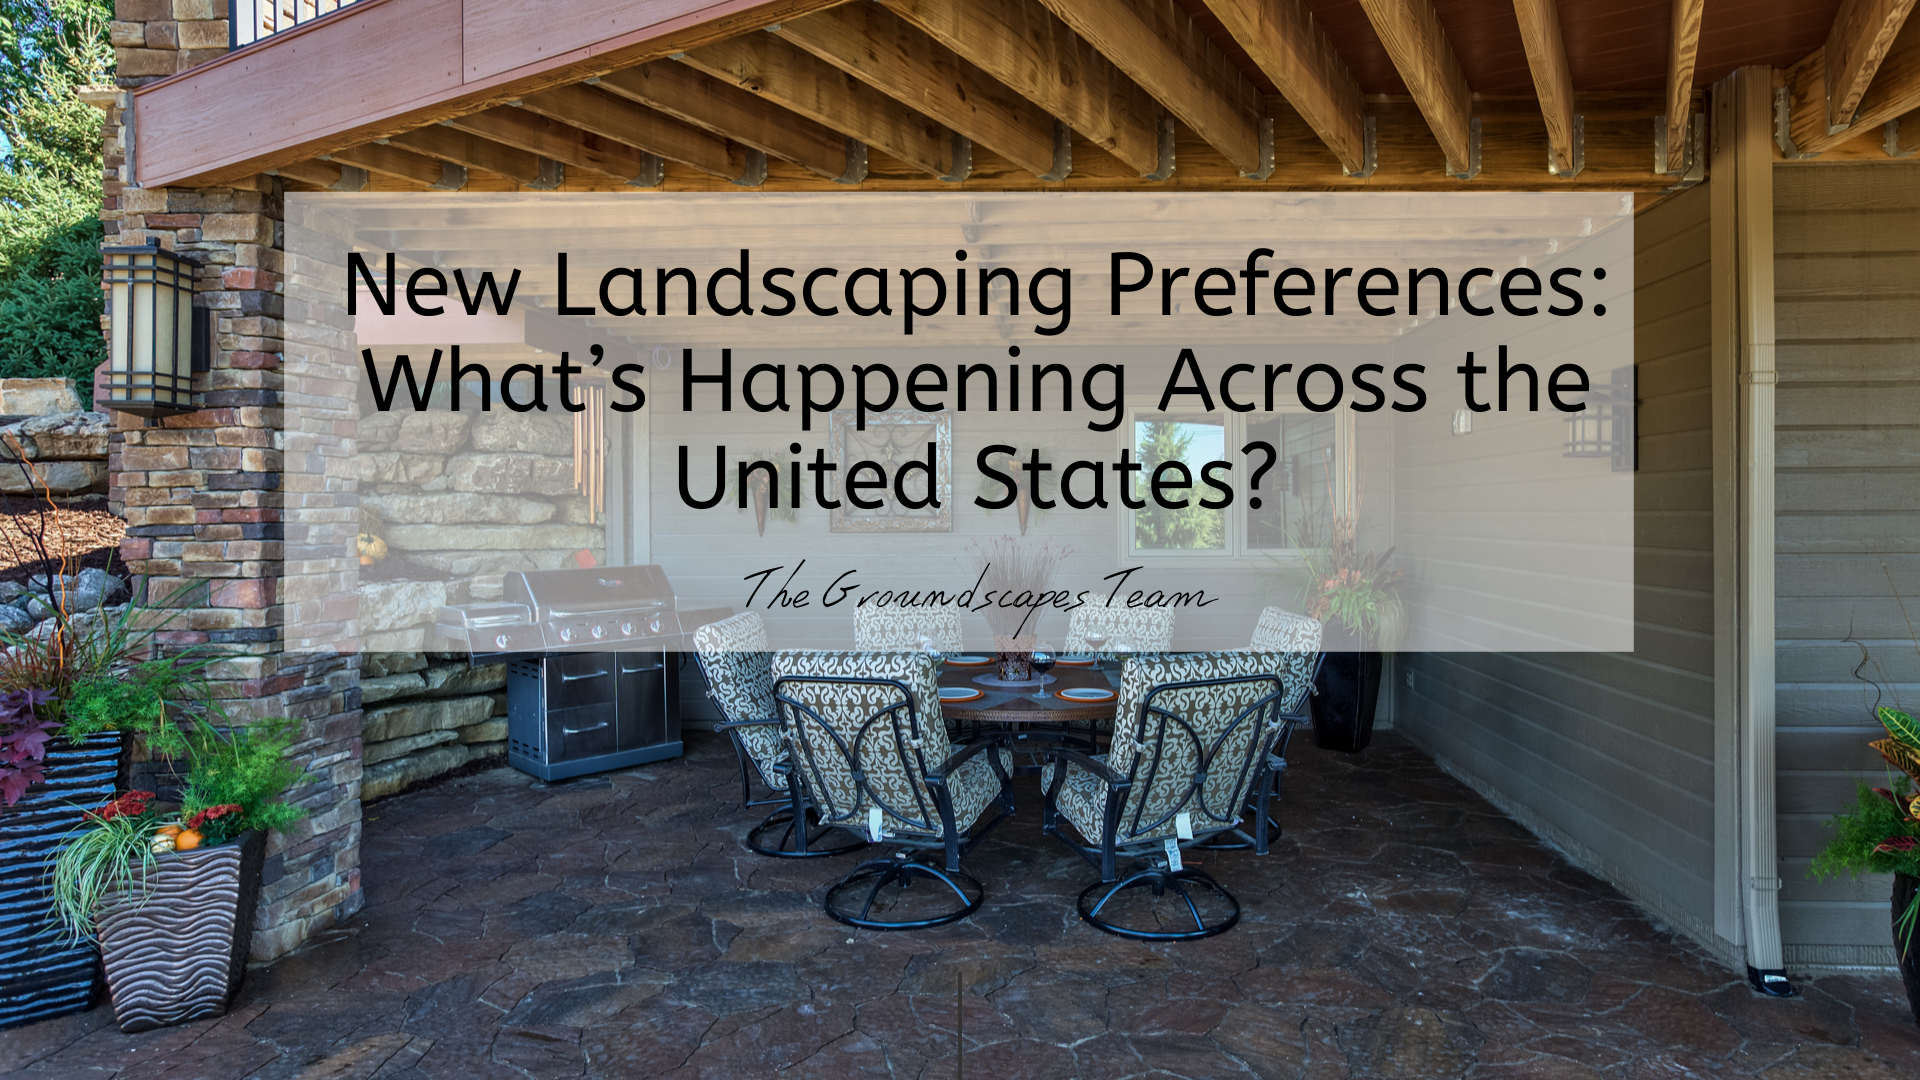 New Landscaping Preferences: What's Happening Across the United States?